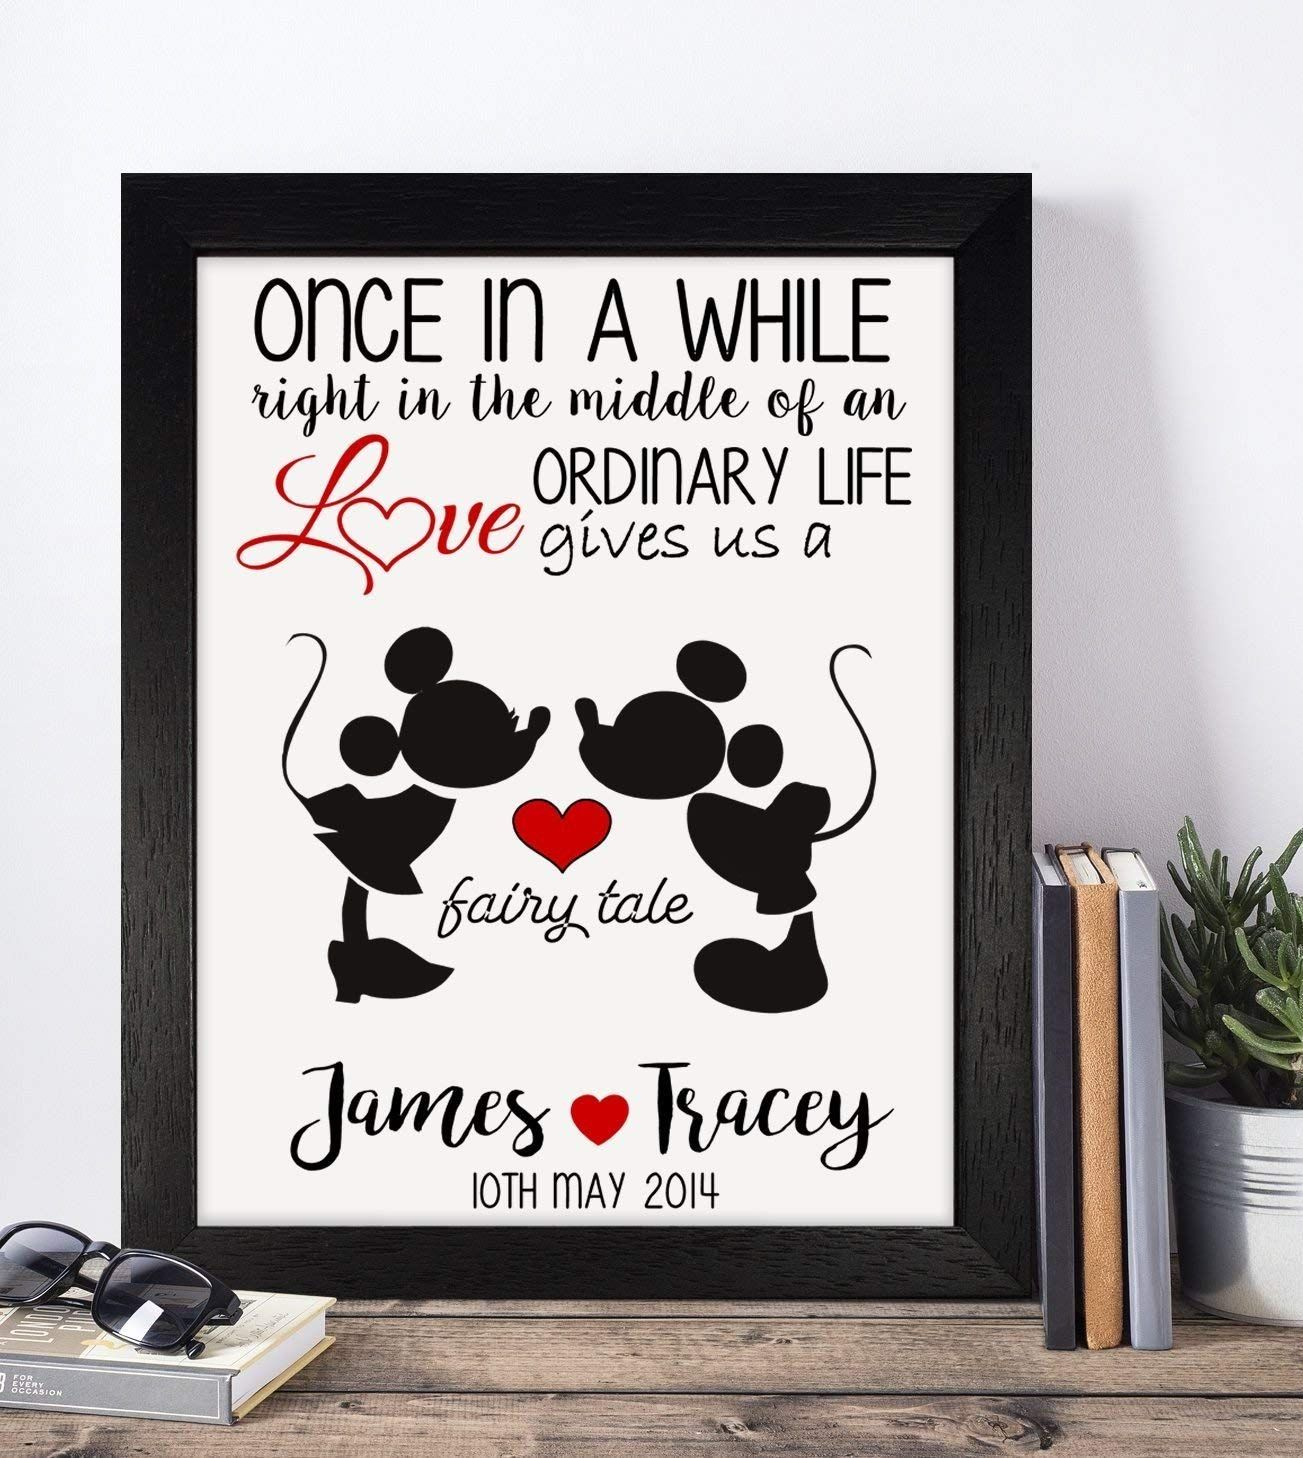 Unique Gifts For Husband On Wedding Day: Personalized Presents Gifts For Him Her Husband Wife